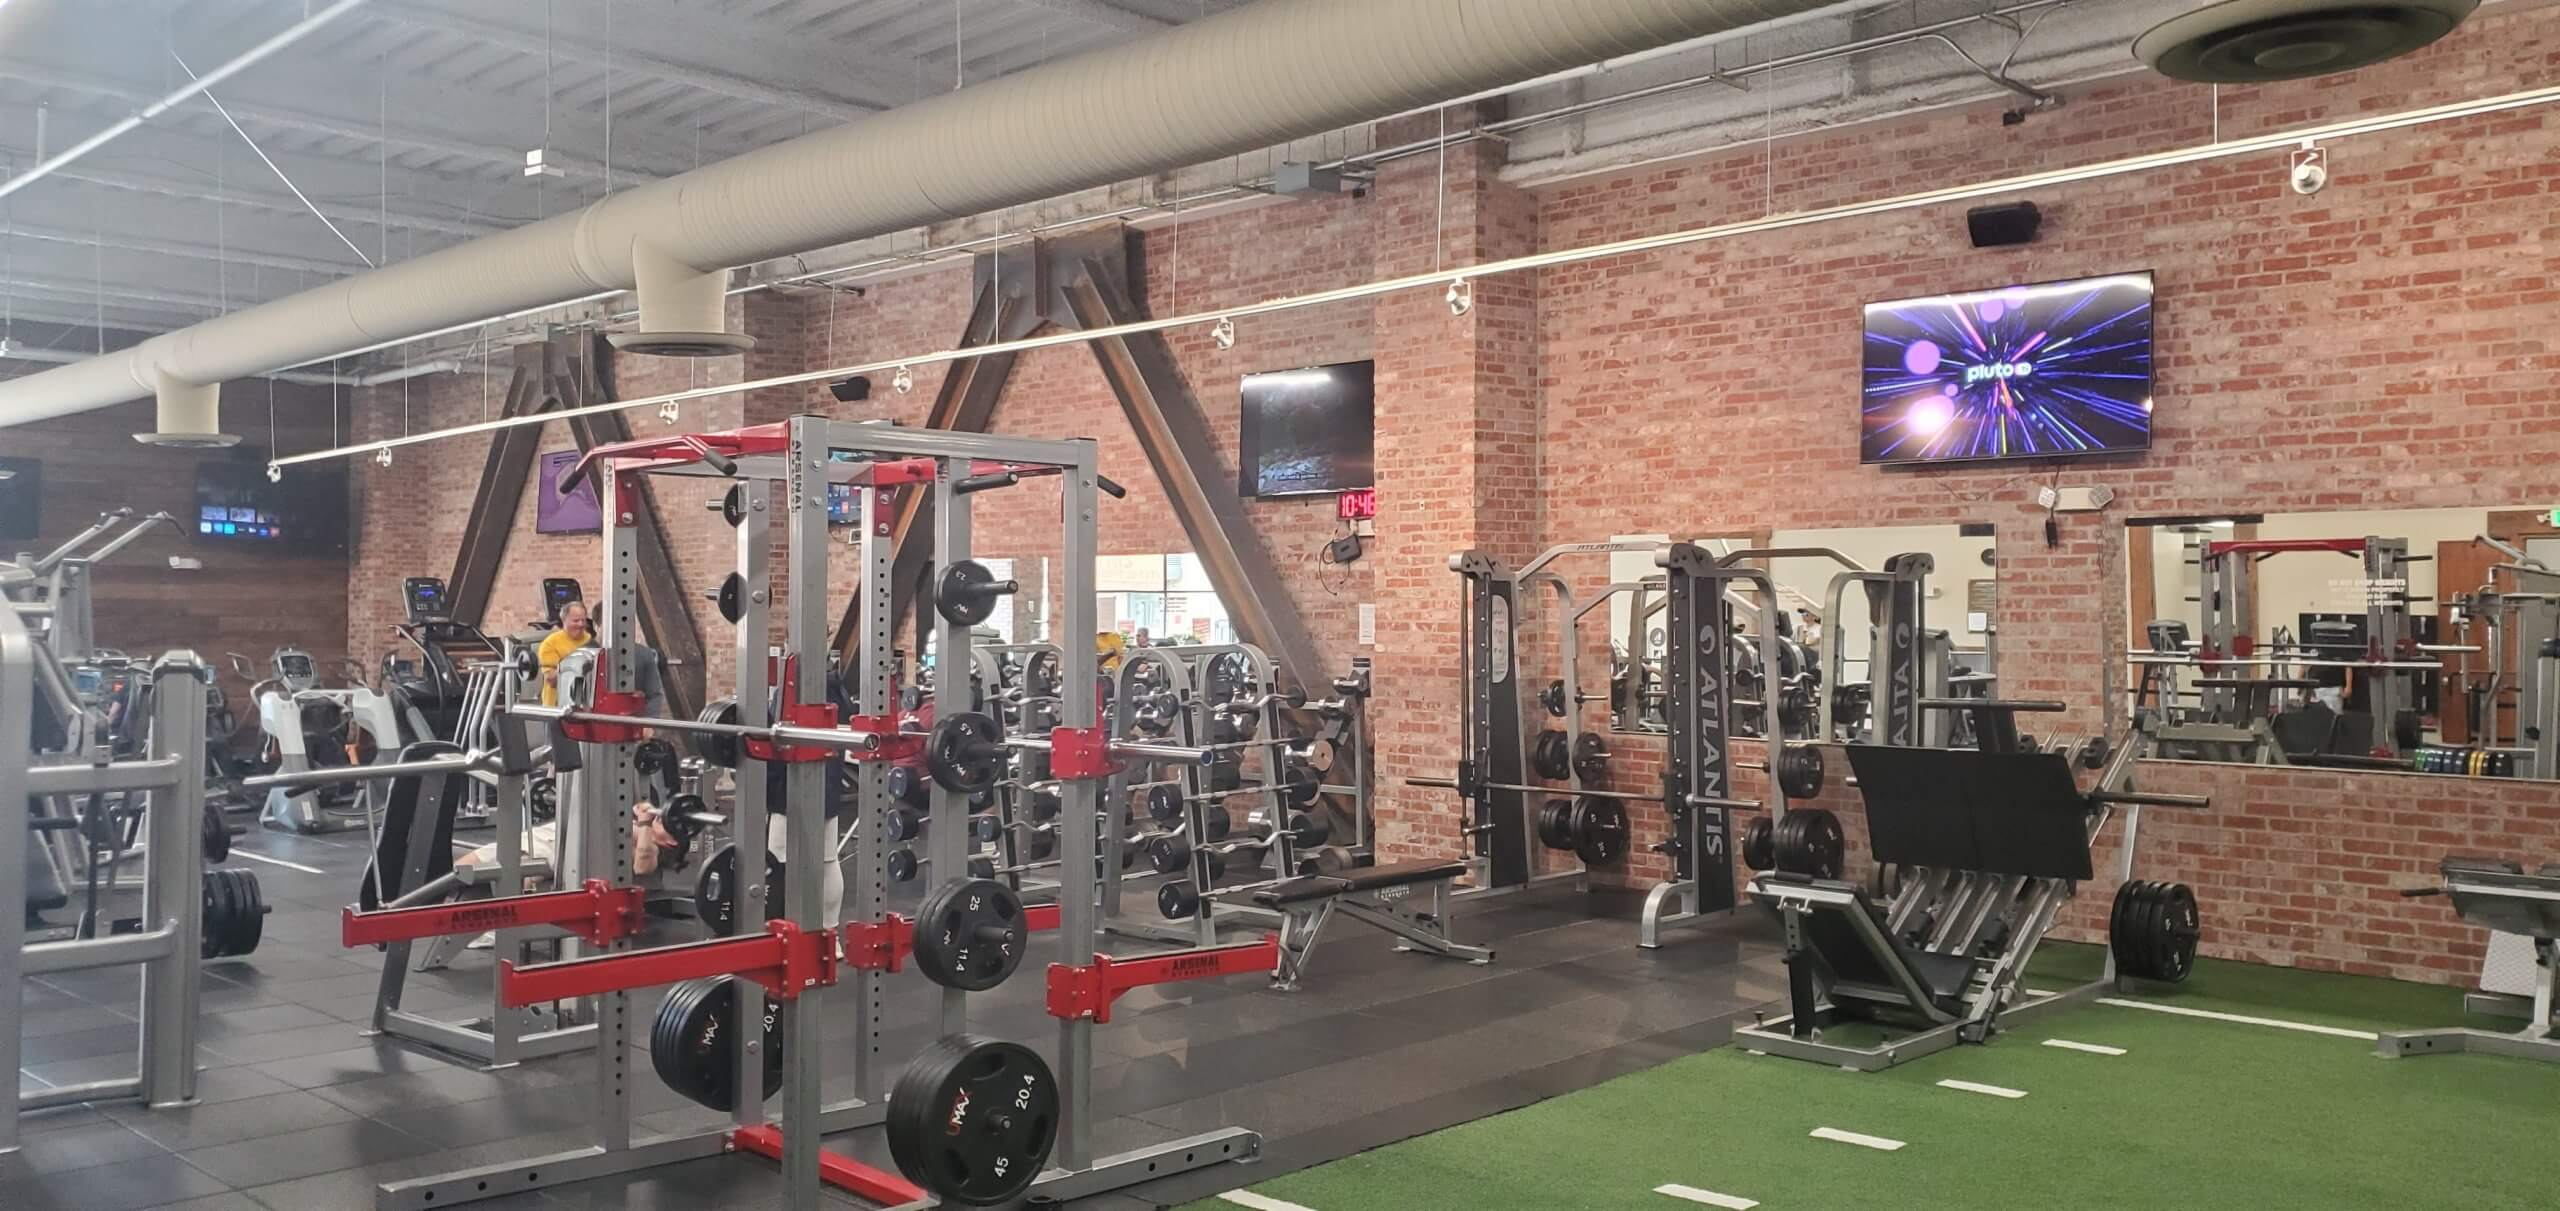 An Image of the Redwood City, CA Powerhouse Gym Location